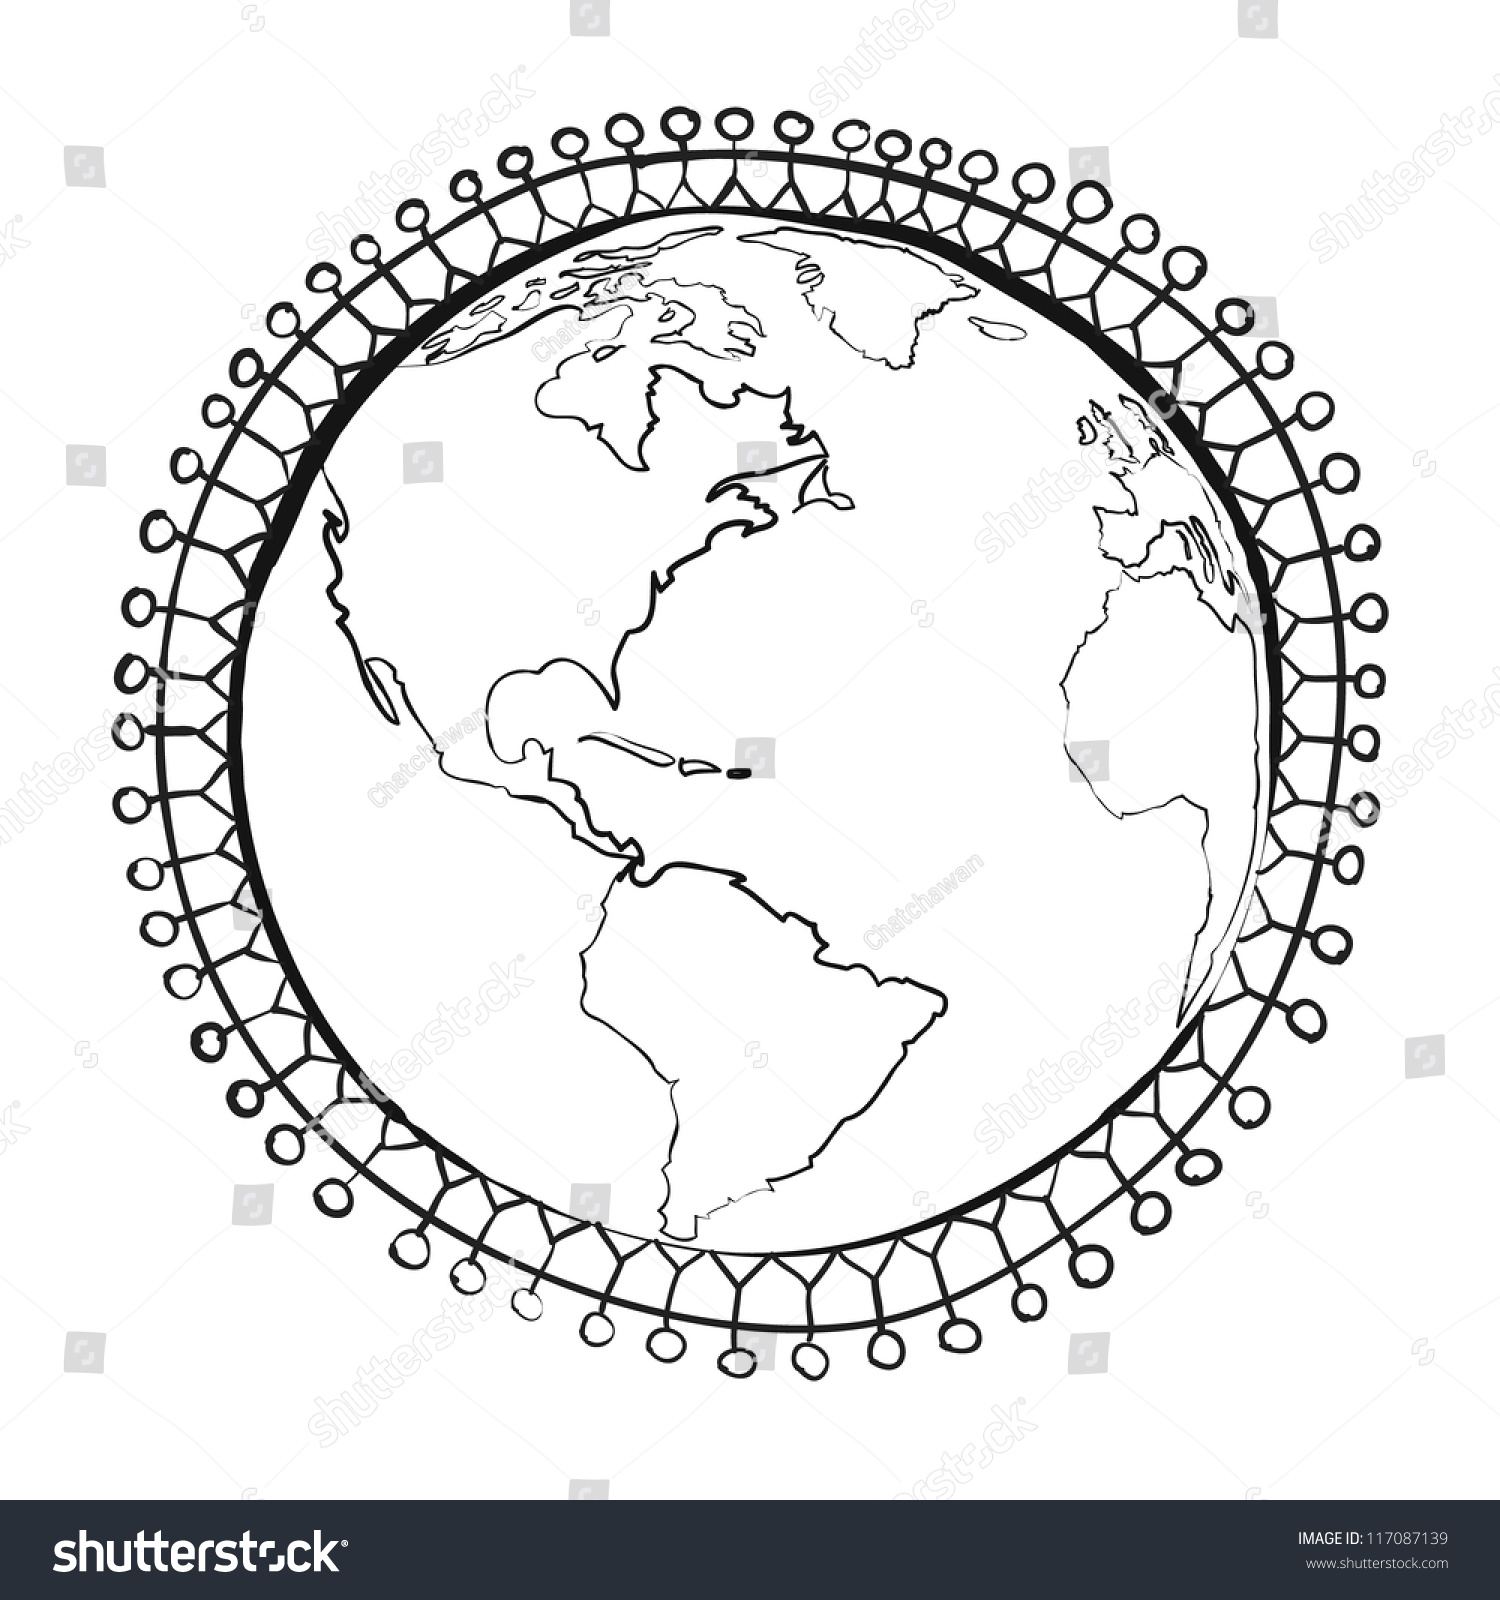 Conceptual symbol multiracial human surrounding earth stock vector conceptual symbol of multiracial human surrounding the earth globe unity world peace humanity biocorpaavc Gallery